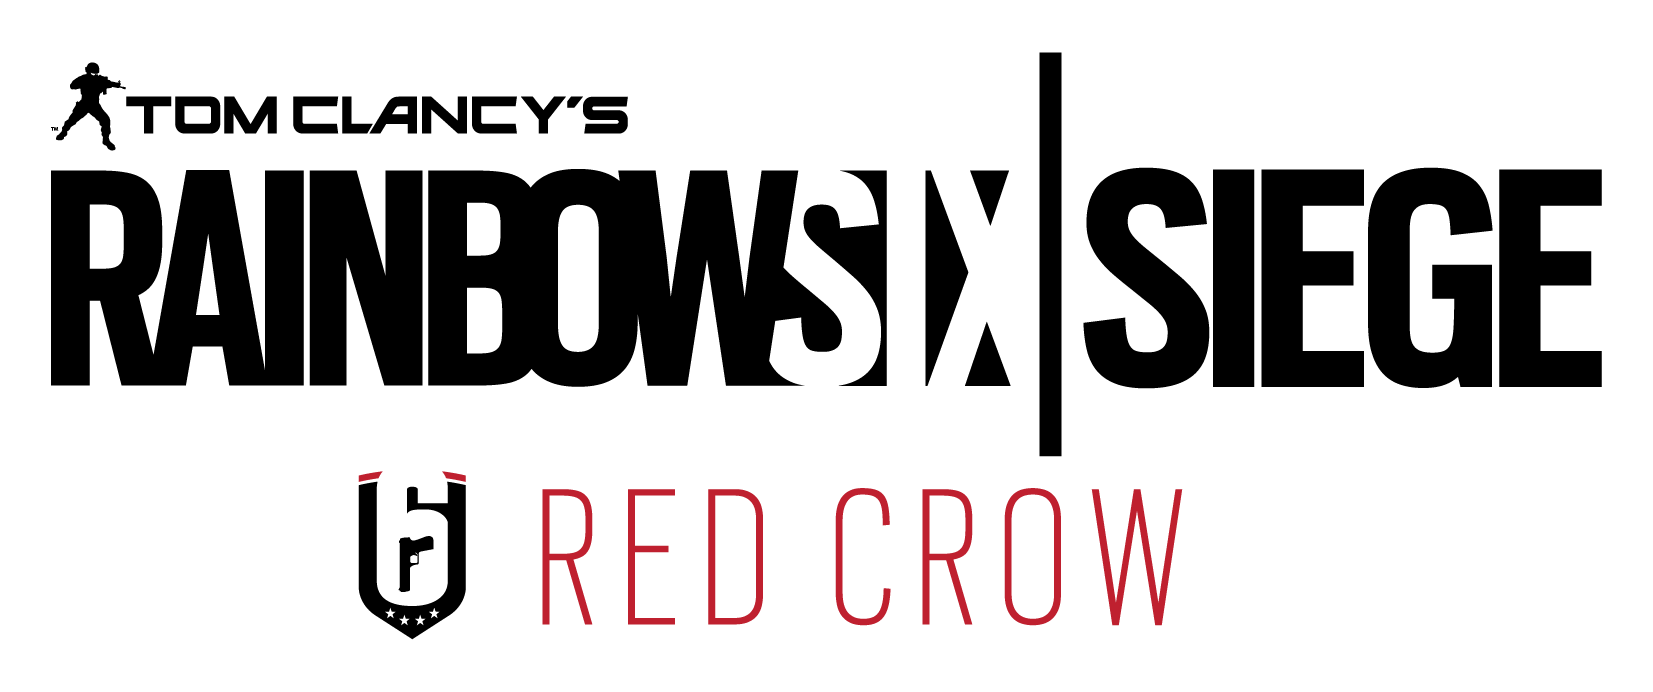 "La actualización ""Operación Red Crow"" para Tom Clancy´s Rainbow Six Siege estara disponible el 17 de noviembre"